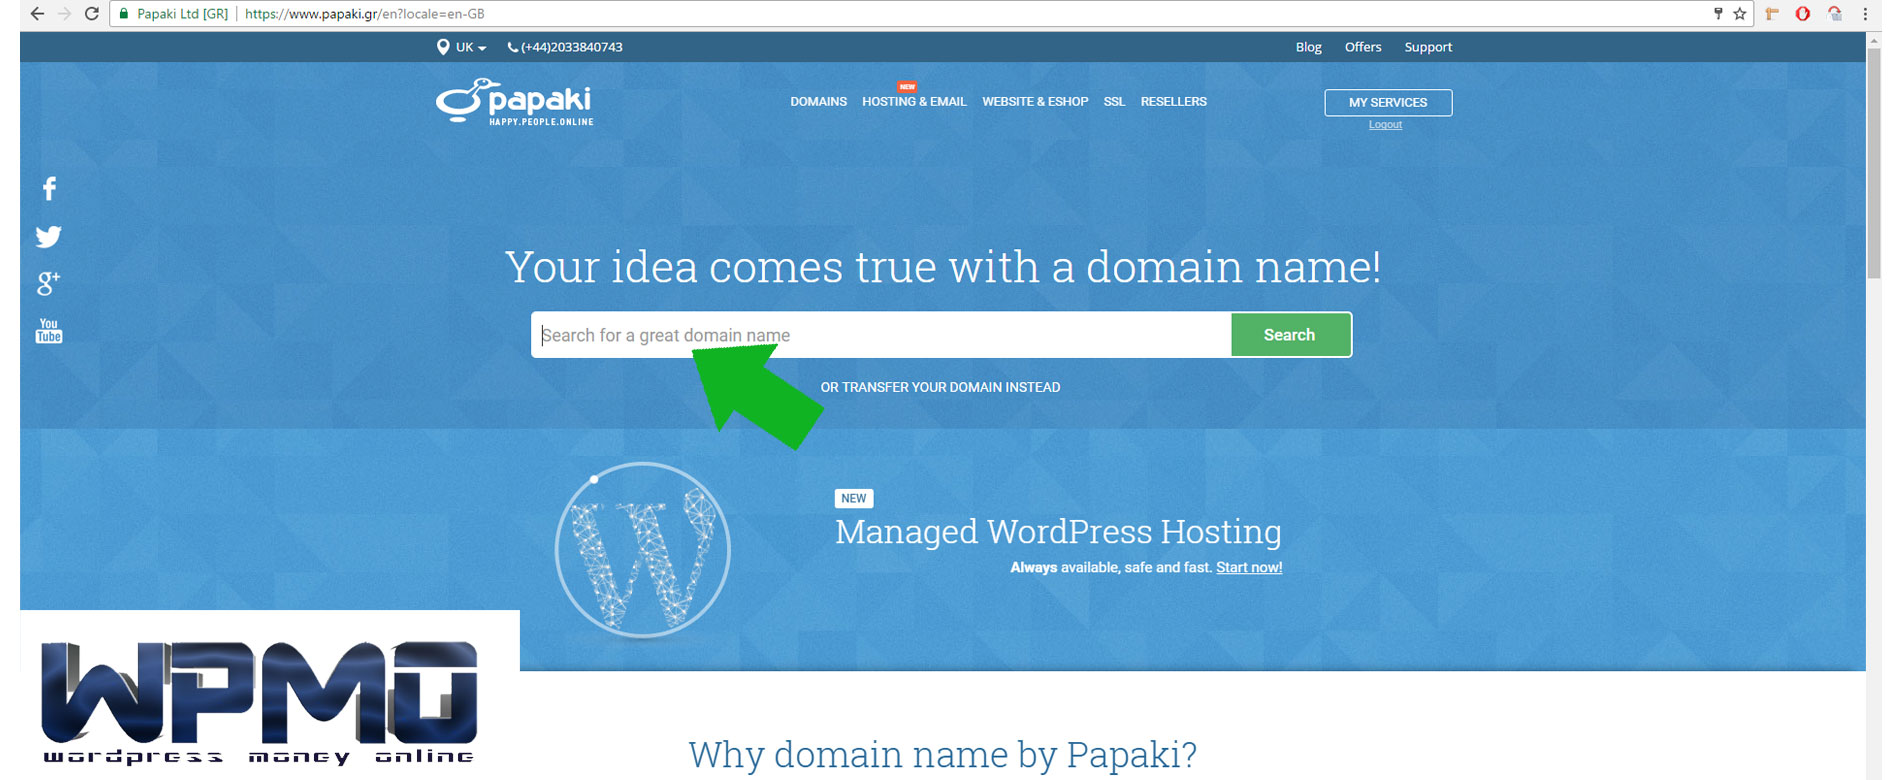 search-for-a-domain-name